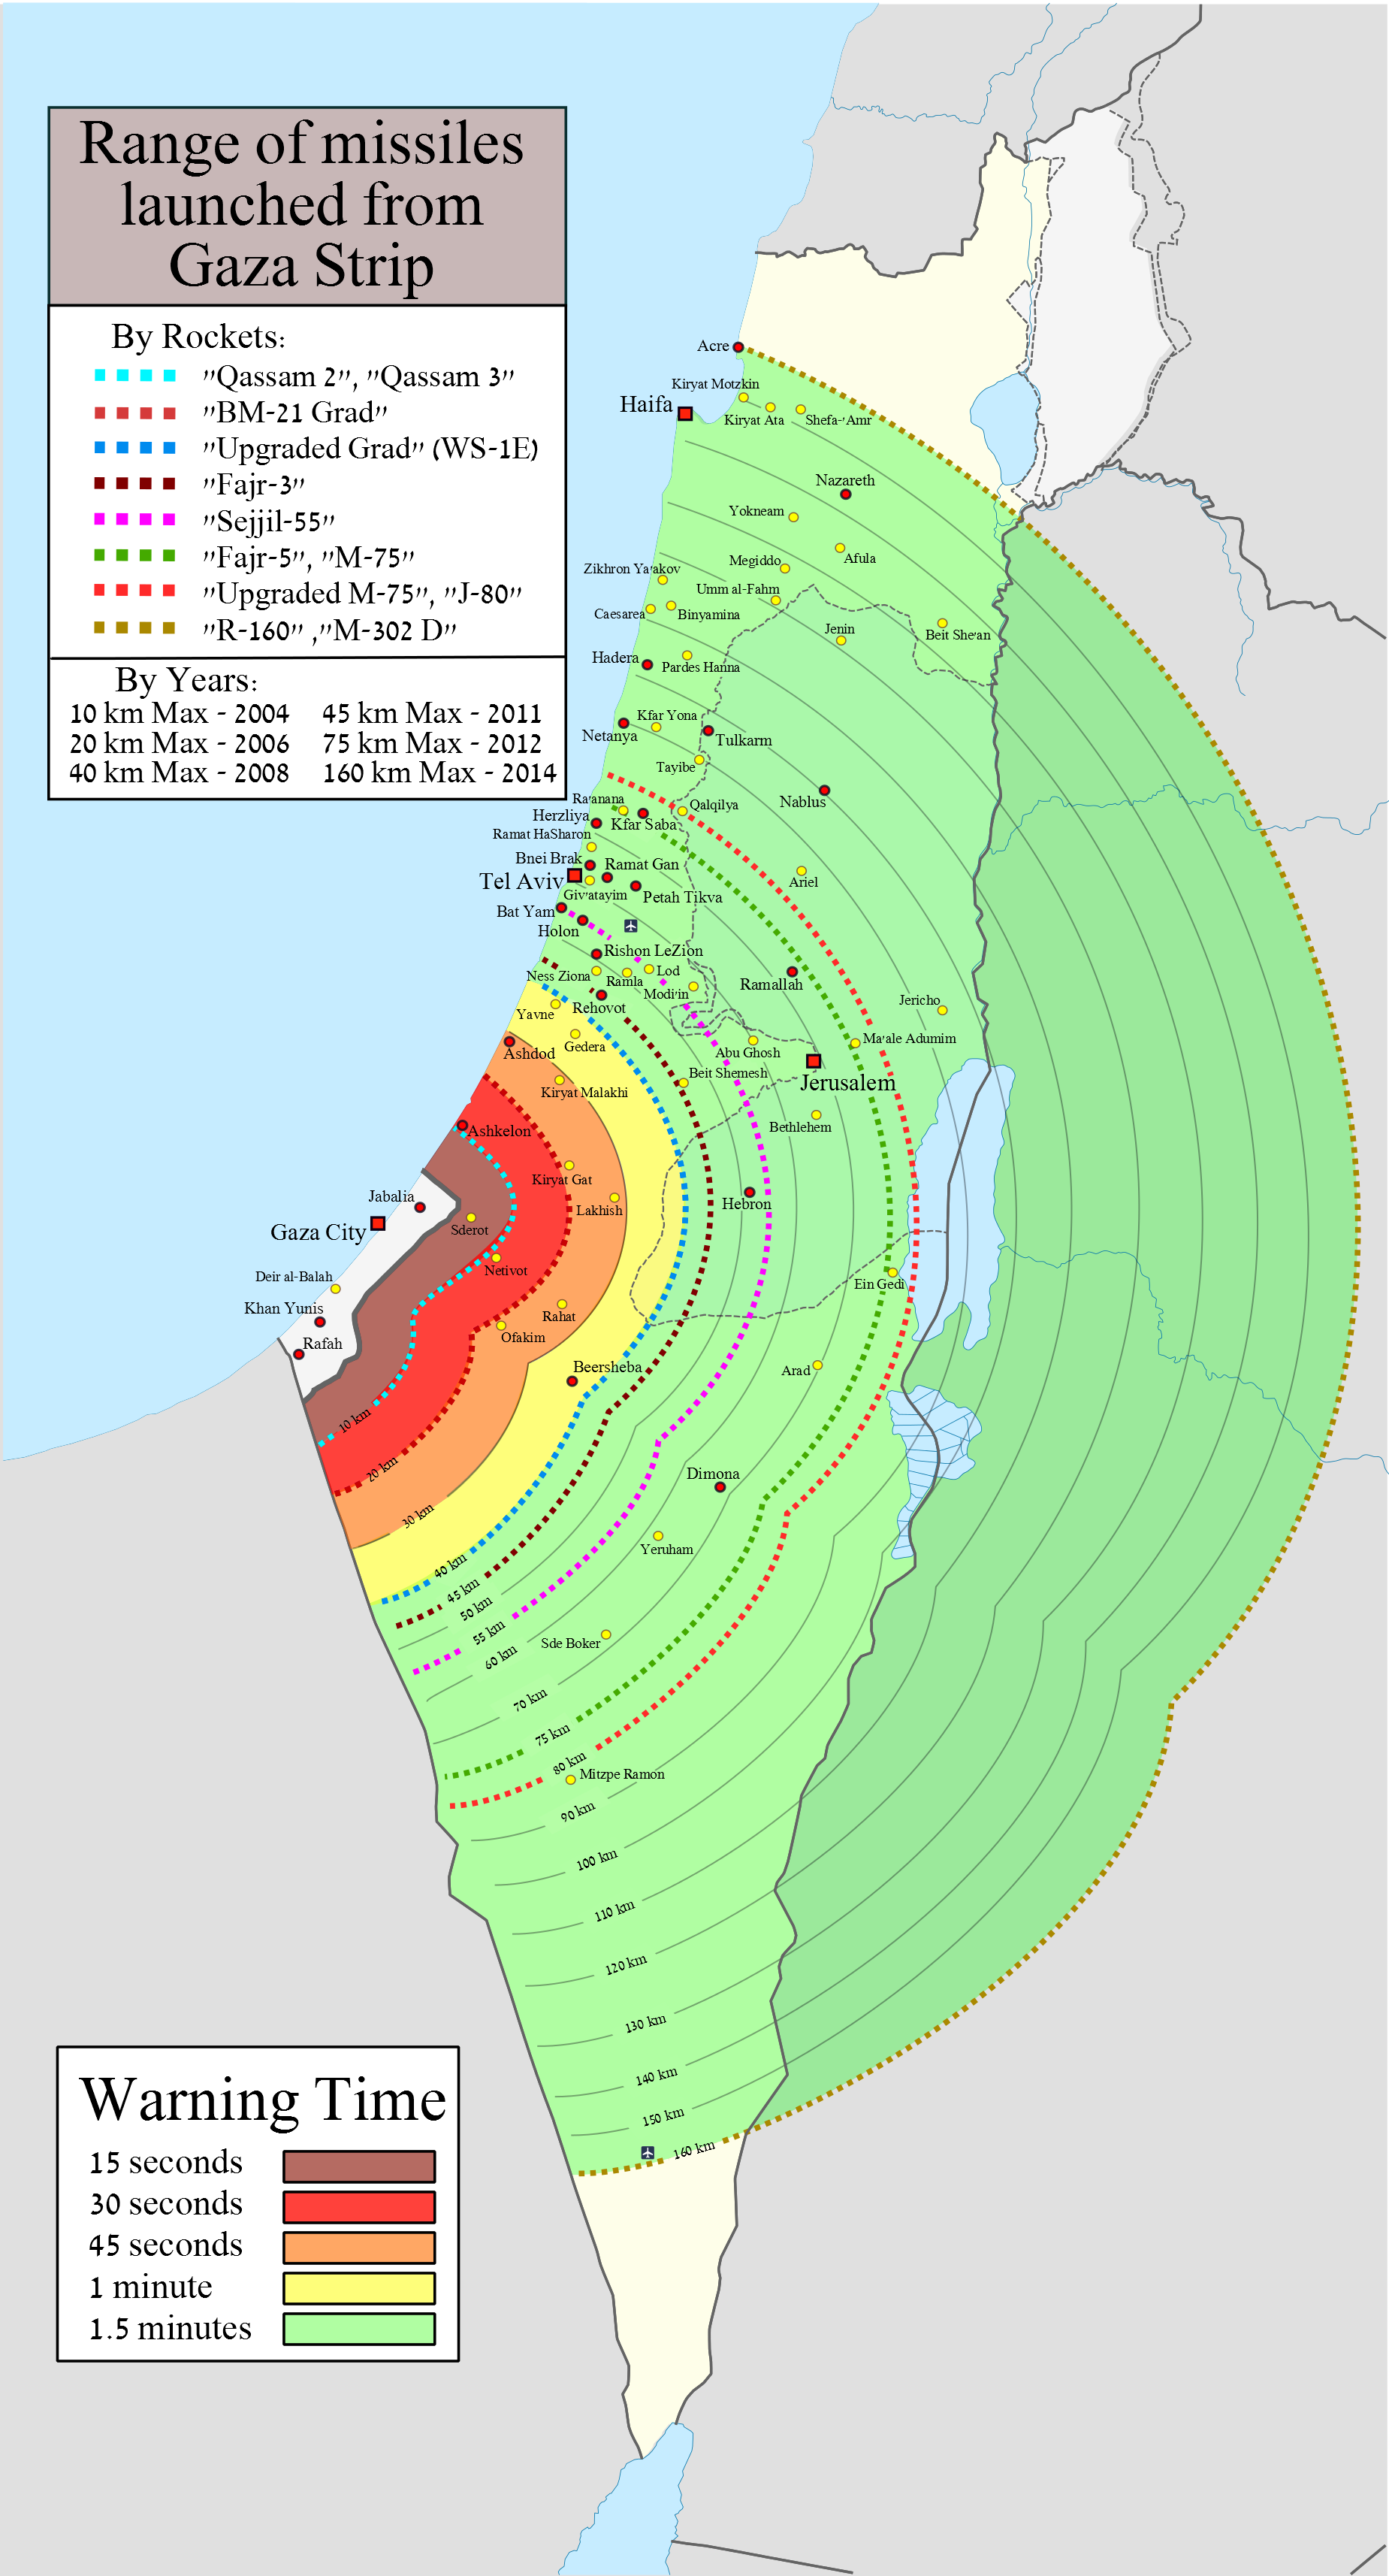 Range of missiles launched from Gaza Strip MAPS Pinterest